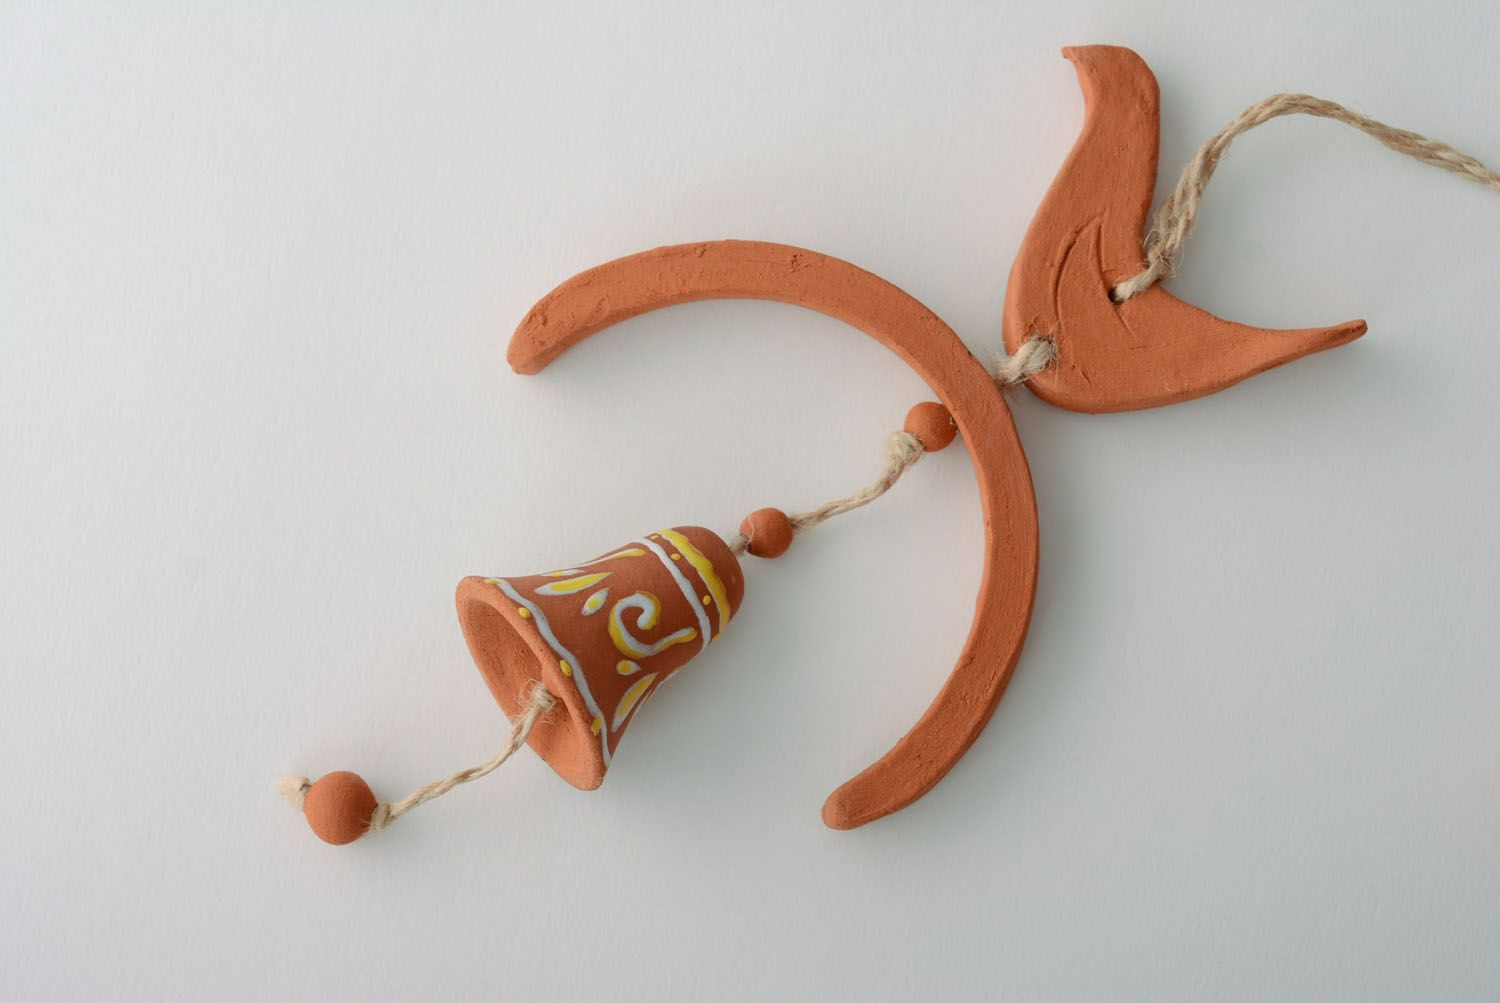 Unusual ceramic hanging bell photo 2